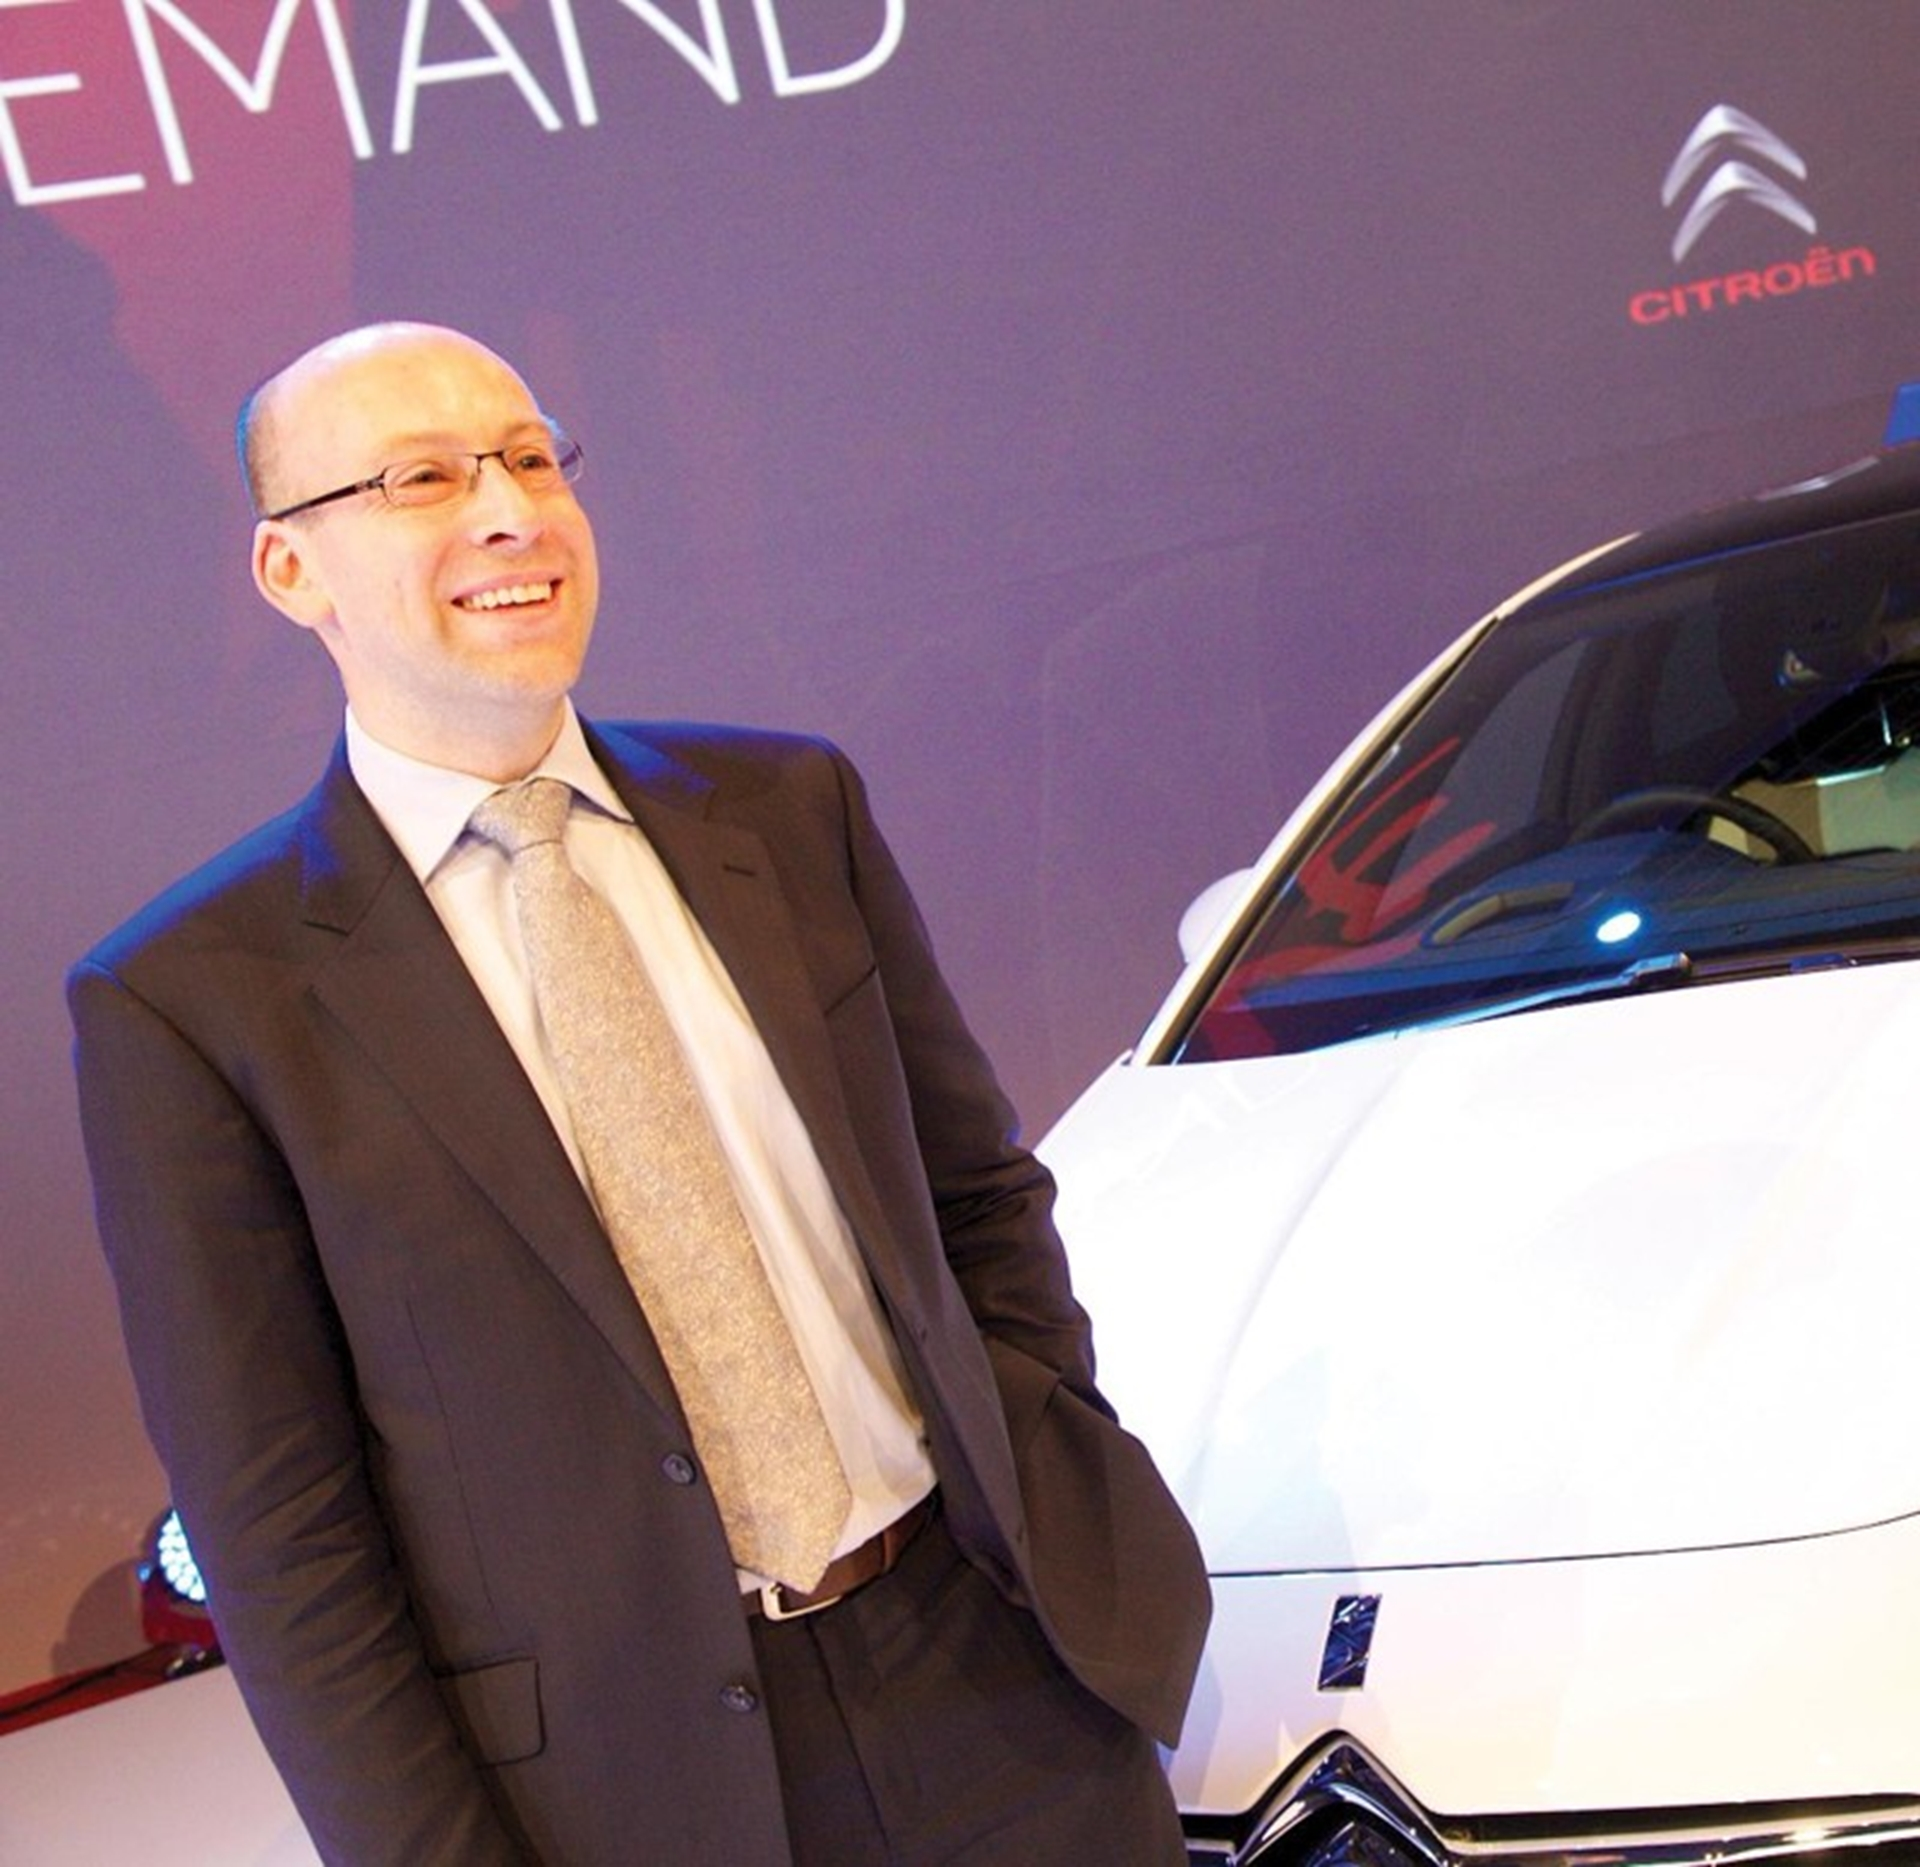 Citroen UK Fleet Director Andy Wady